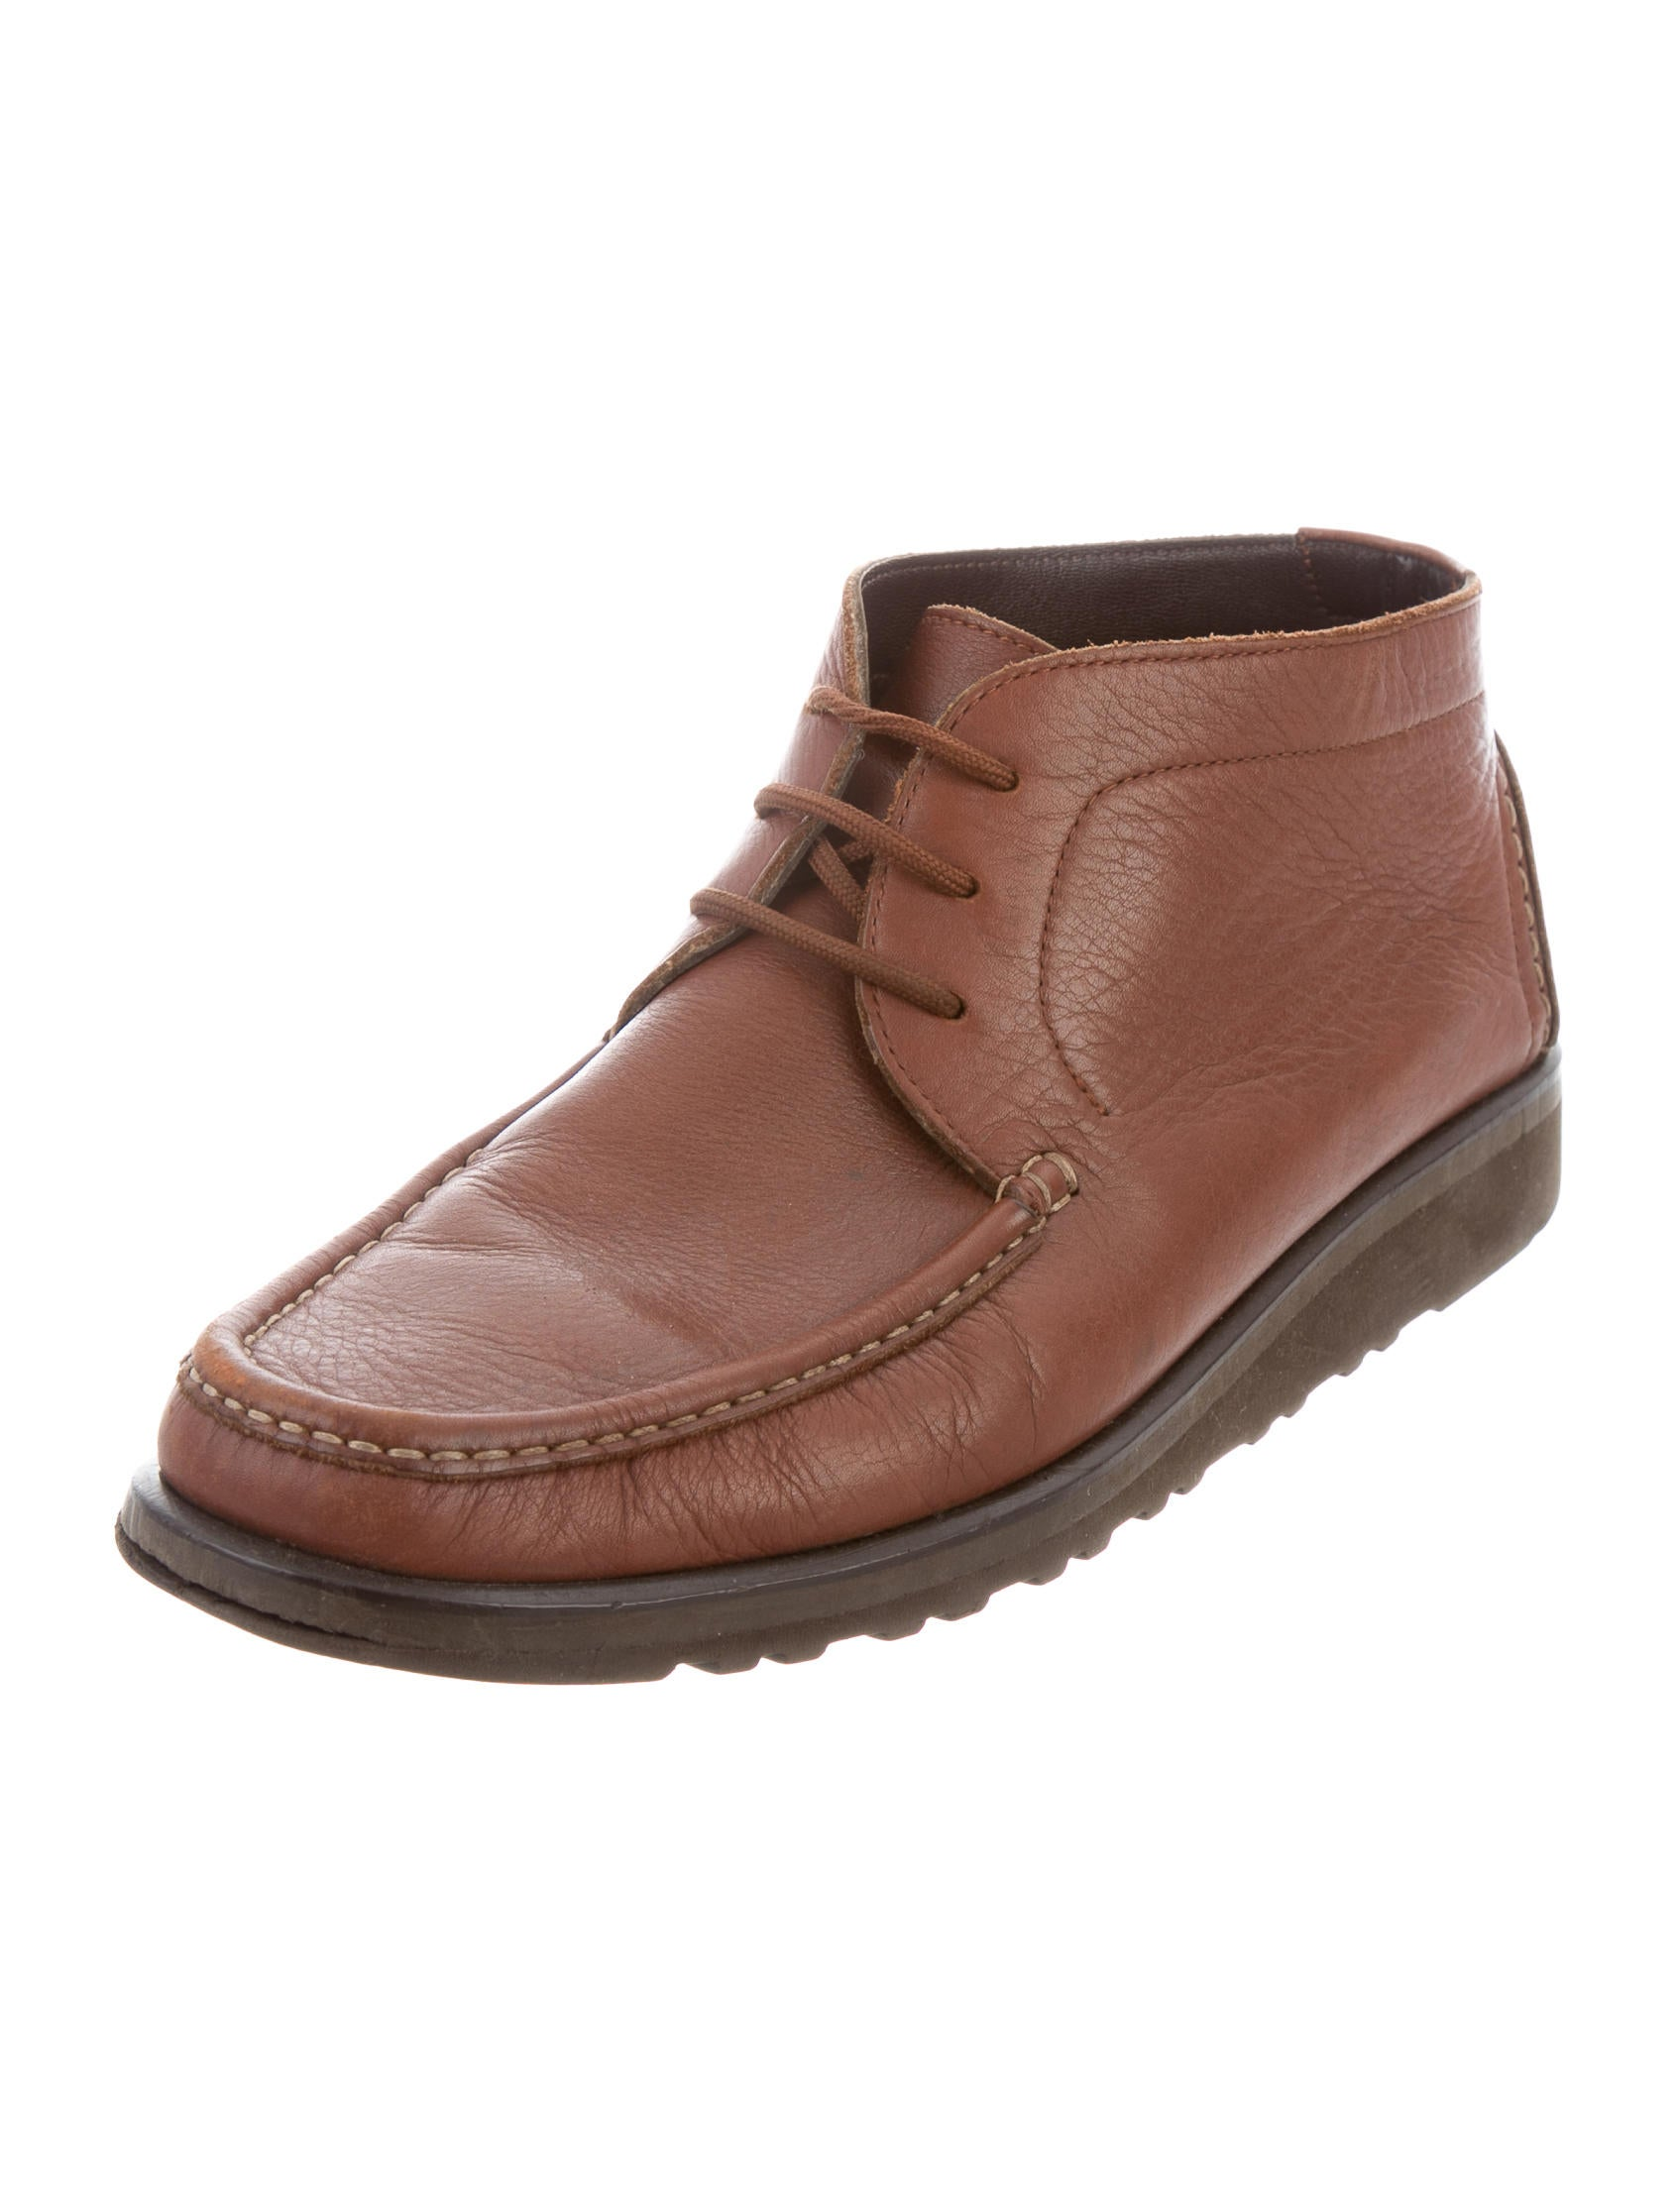 Shop Clarks Leather Desert Boots at East Dane, designer men's fashion. Fast free shipping worldwide!